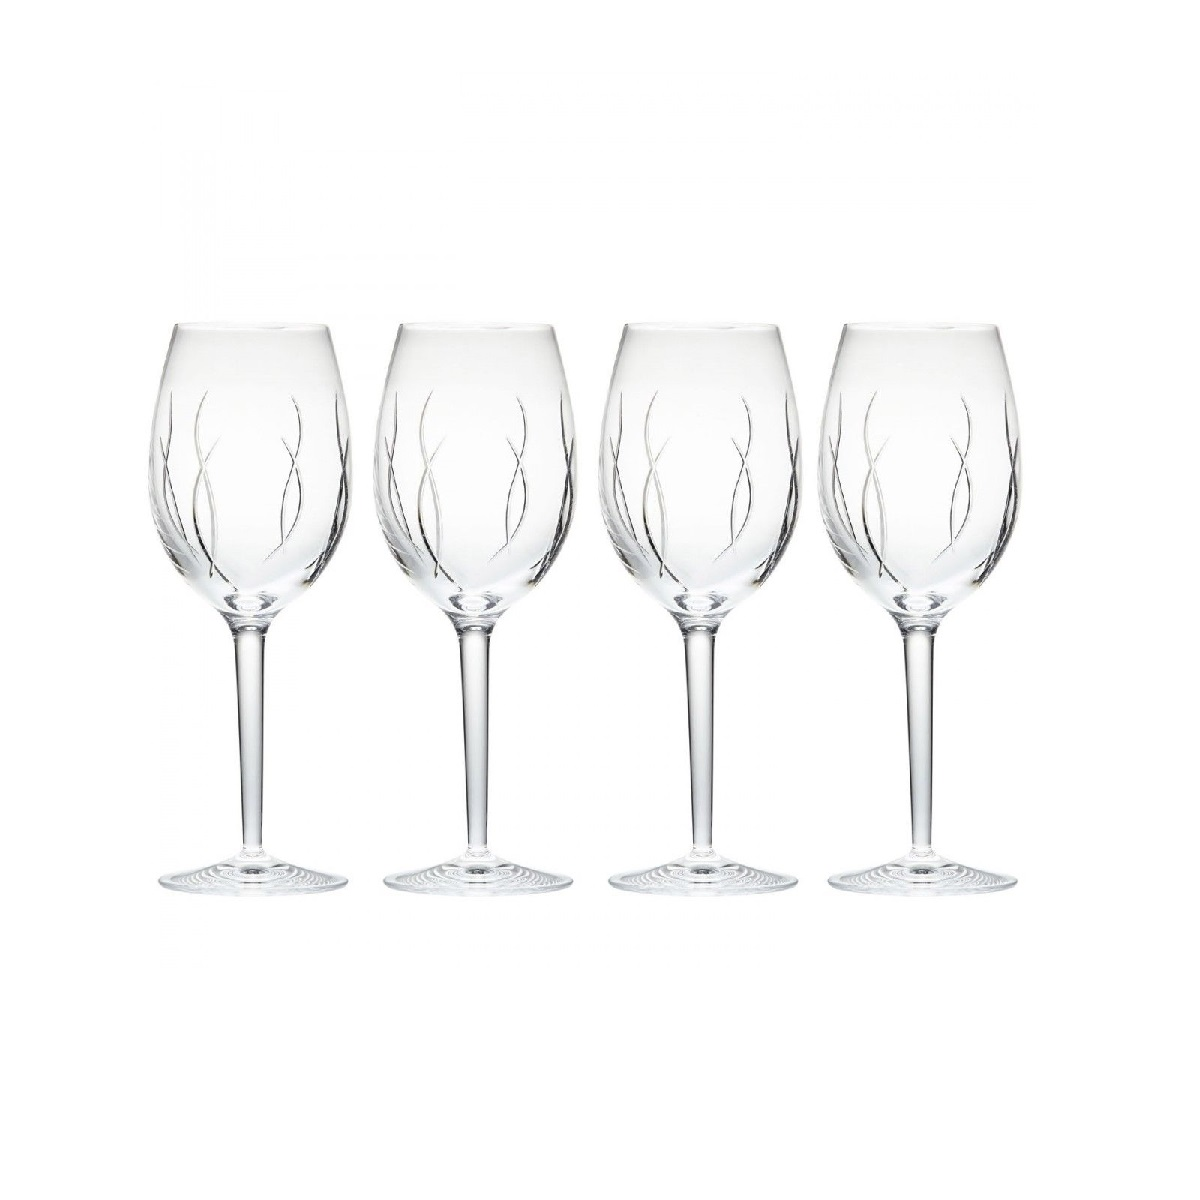 Neat Waterford Crystal John Rocha Flow Weft Glasses Waterford Crystal John Rocha Flow Weft Glasses Skellig Gift Store Waterford Crystal Wine Glasses John Lewis Waterford Crystal Wine Glasses Myer houzz-02 Waterford Crystal Wine Glasses